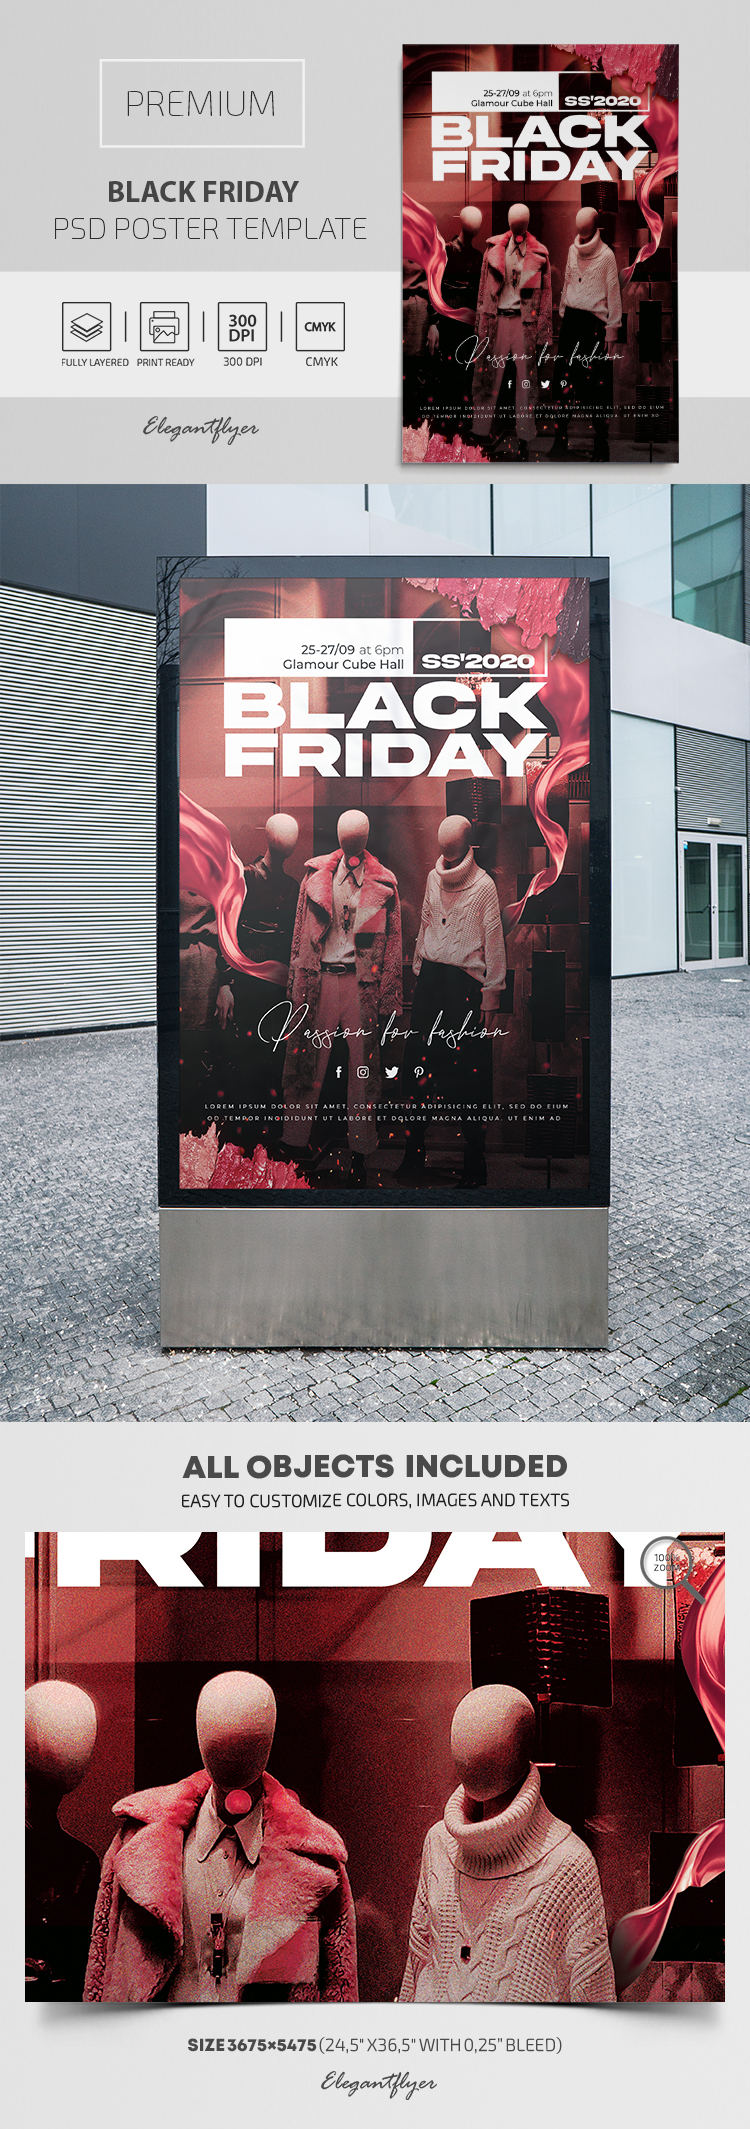 Black Friday – Premium PSD Poster Template